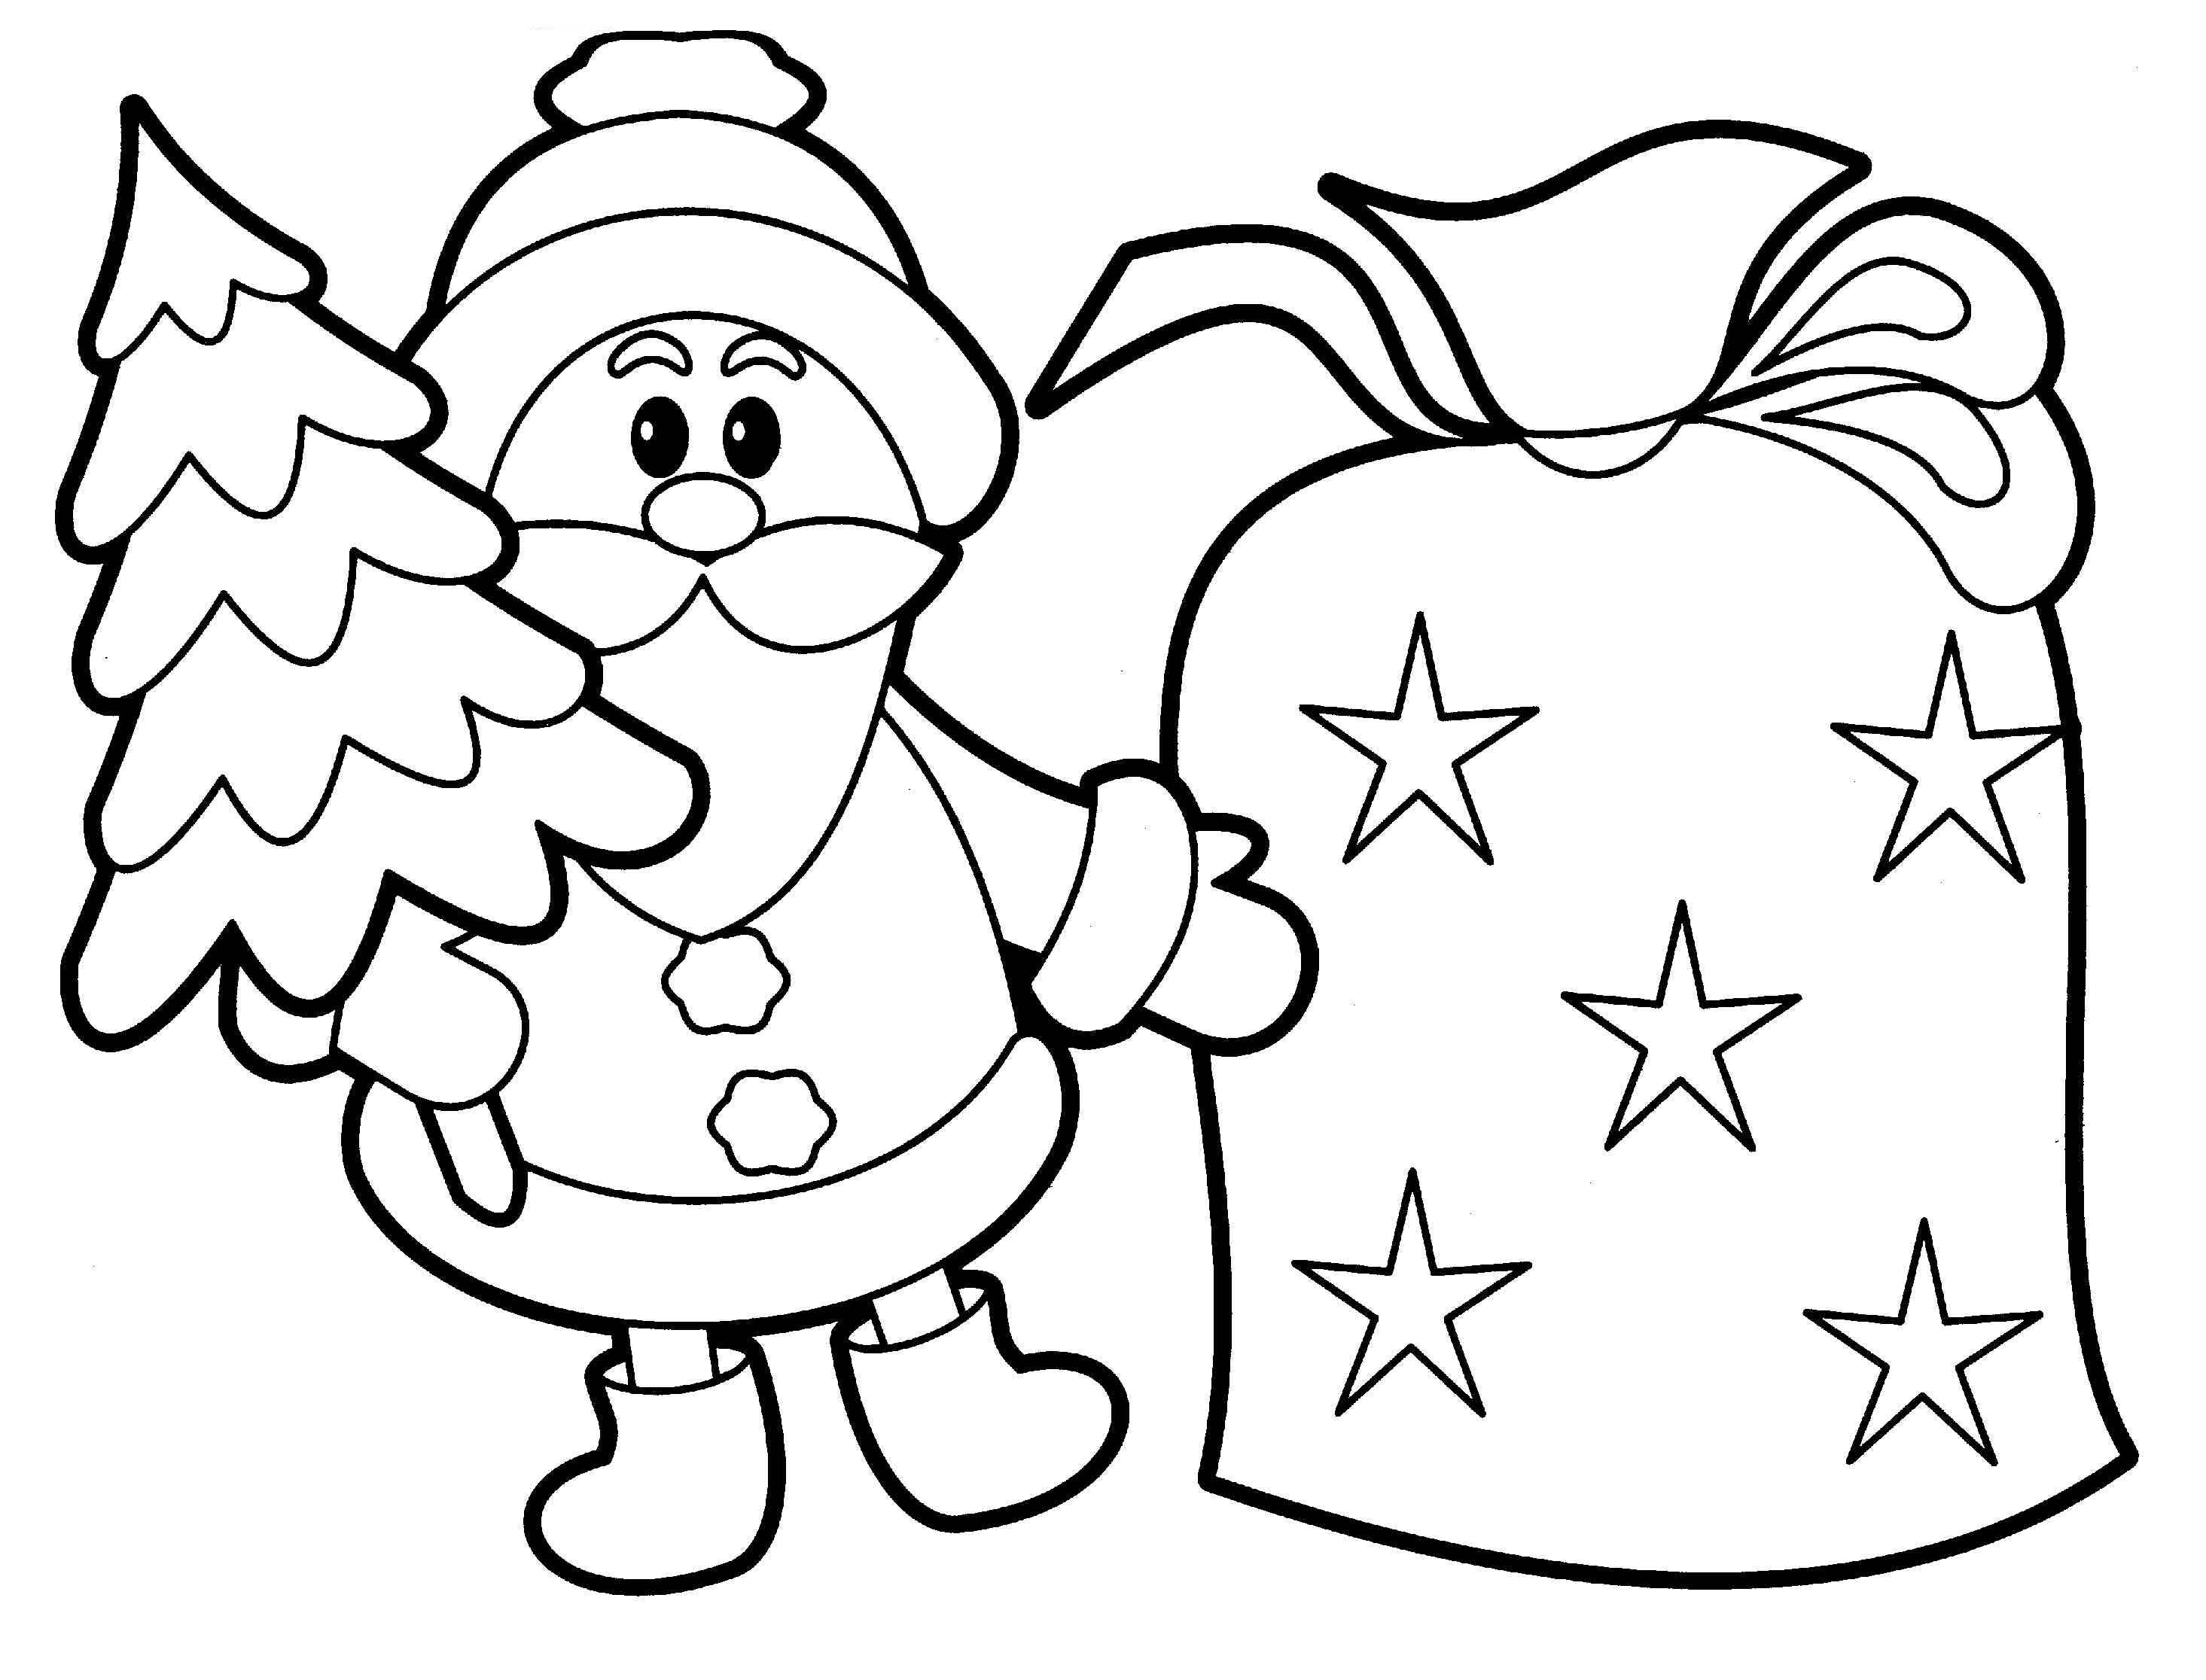 These Fun Christmas Santa Claus Coloring Pages With Gallery Free Books